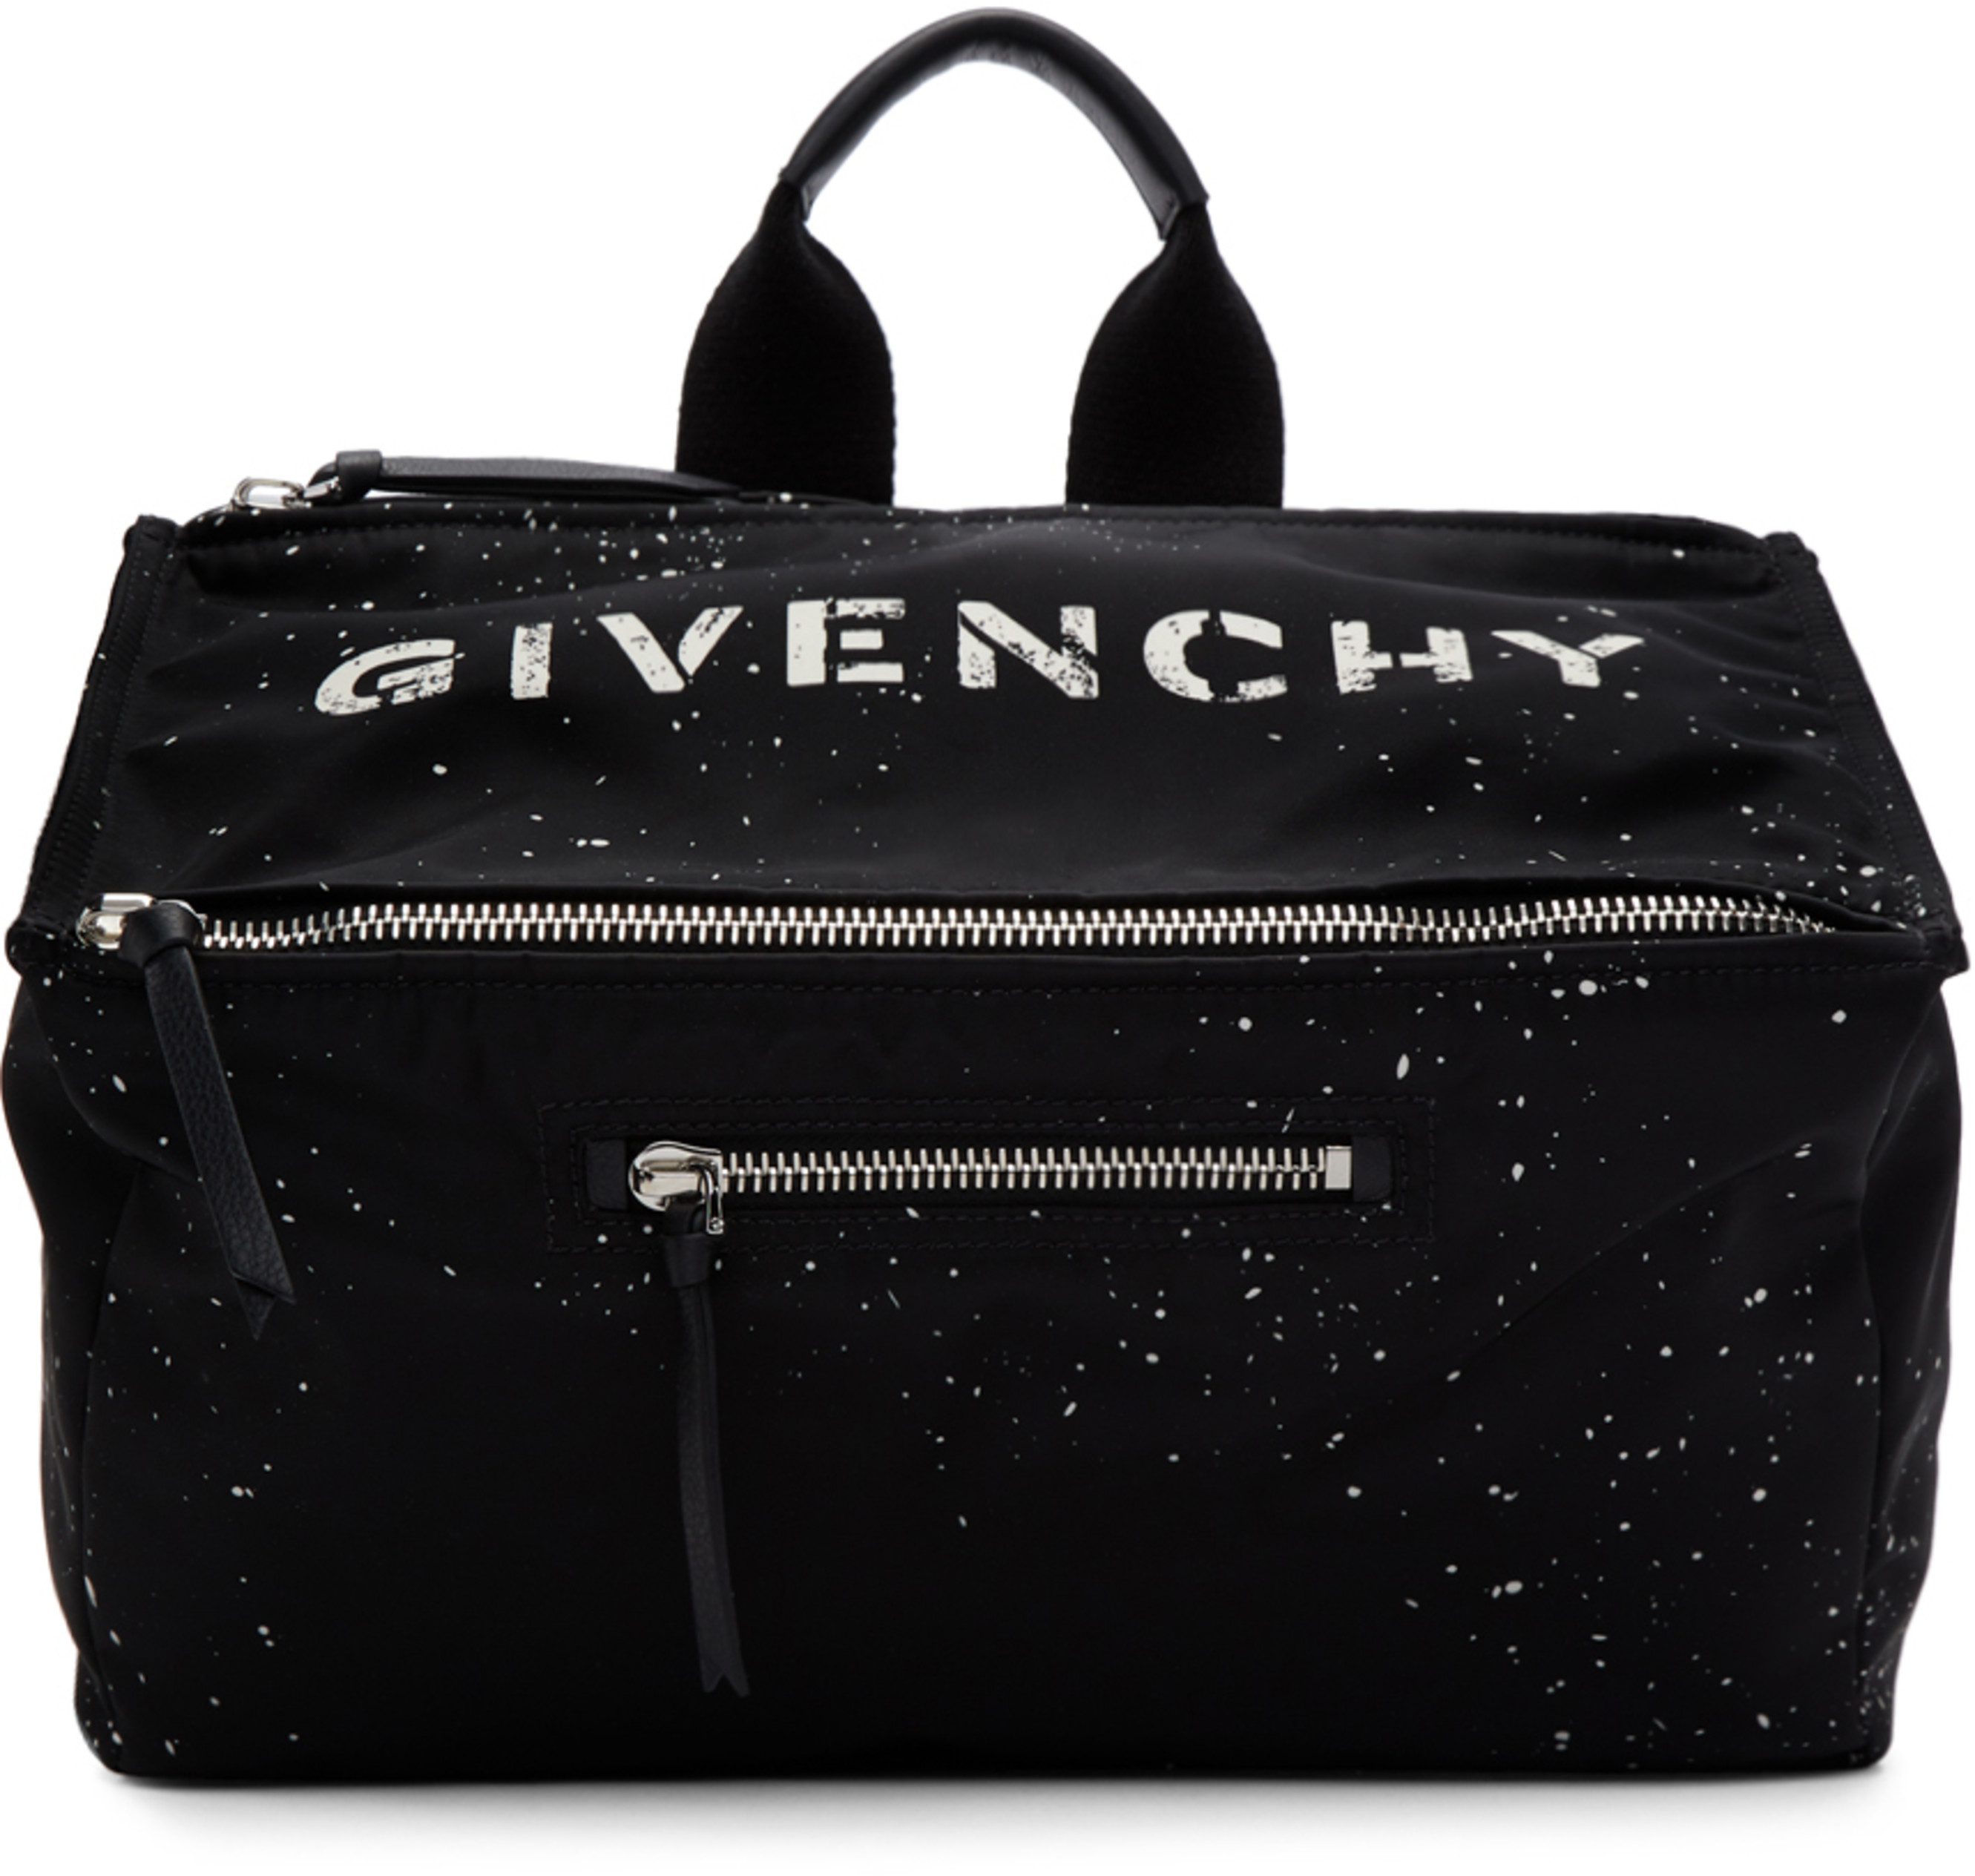 26b63ad44c Givenchy bags for Men